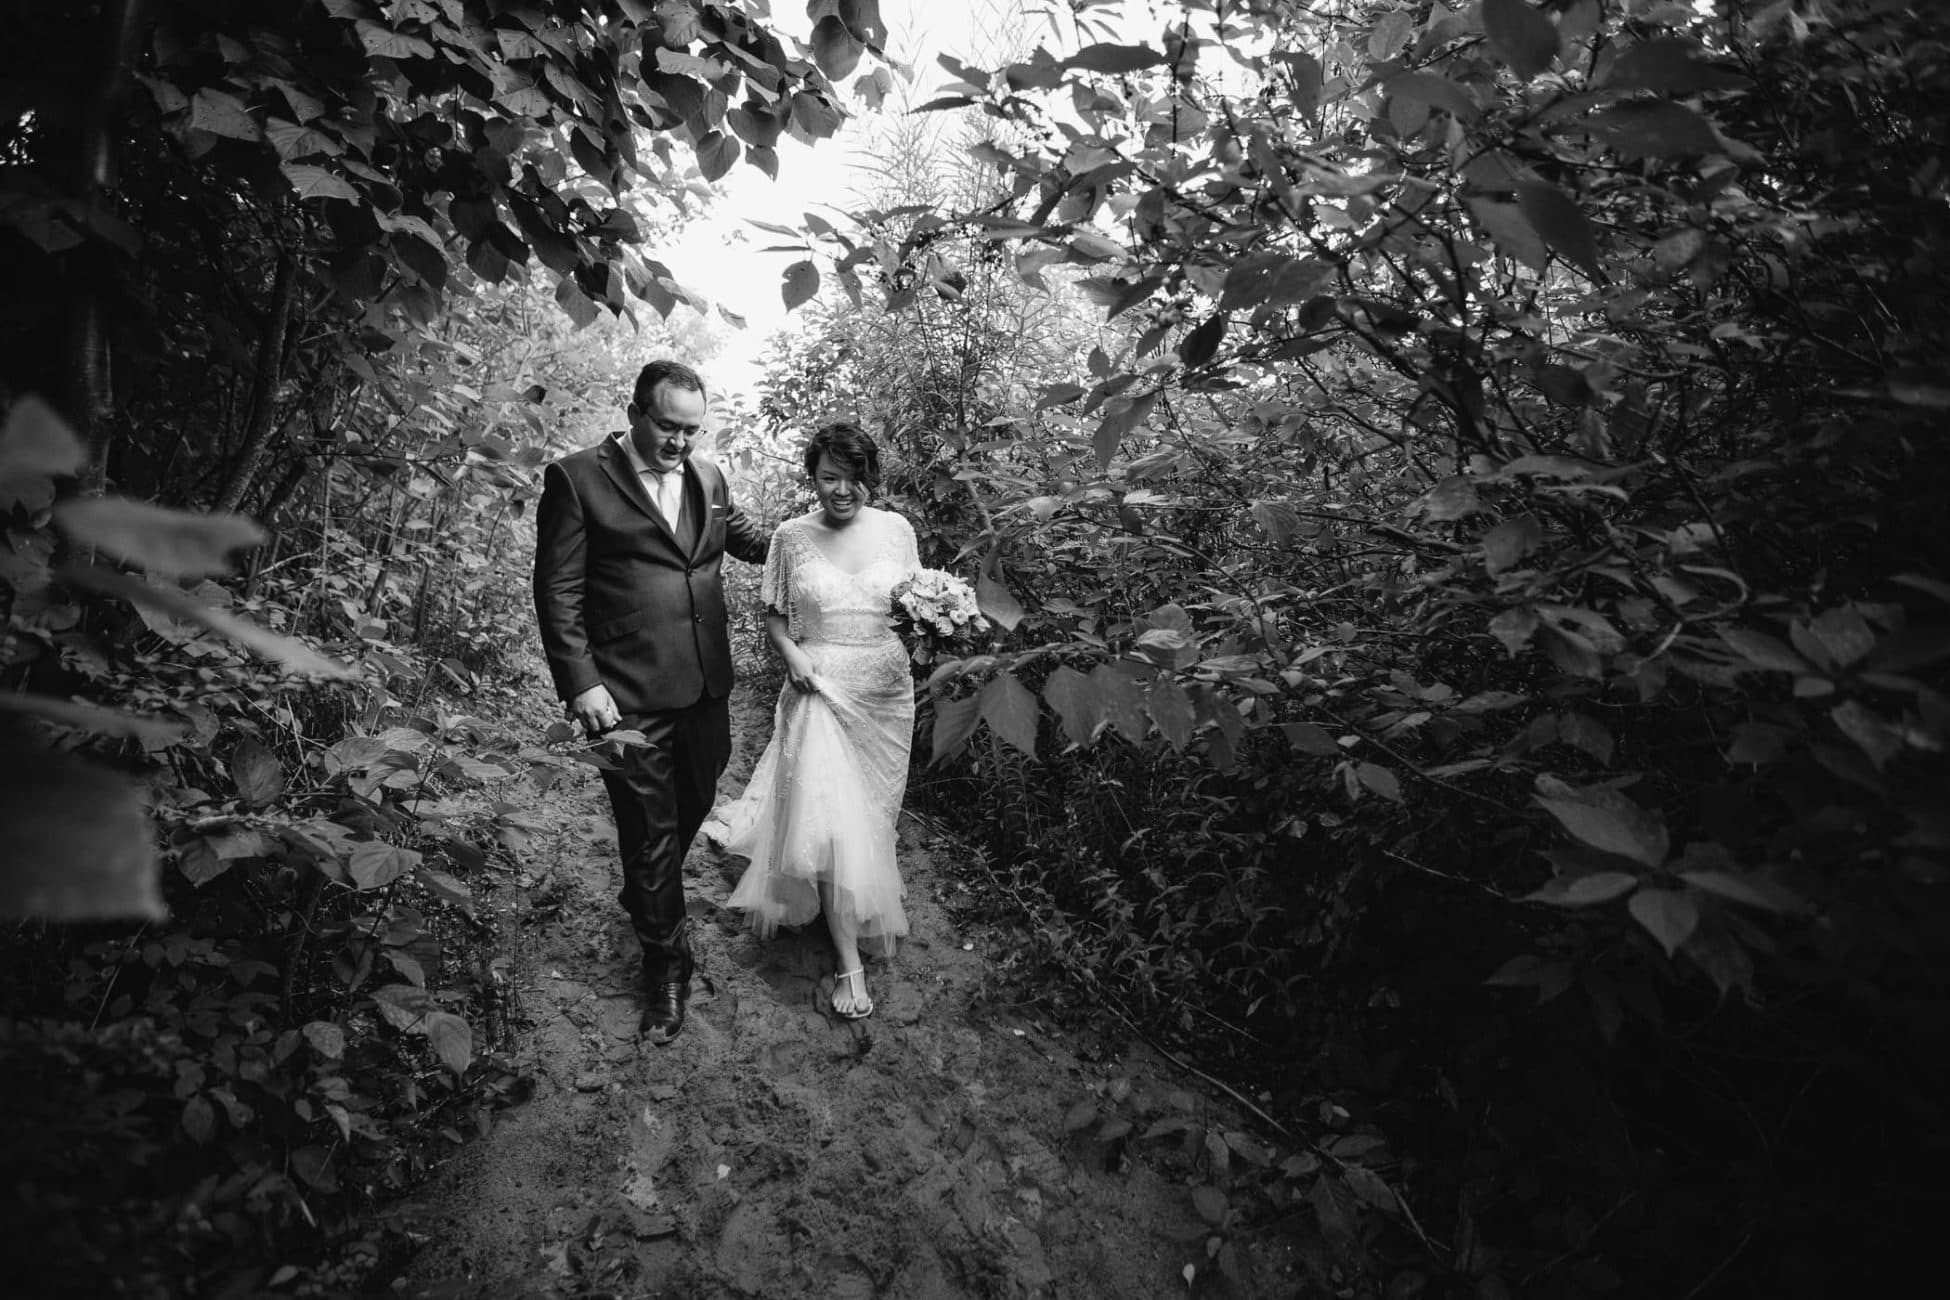 The bride and groom walk down a sandy path surrounded by bushes towards their Artscape on Toronto Island wedding reception.